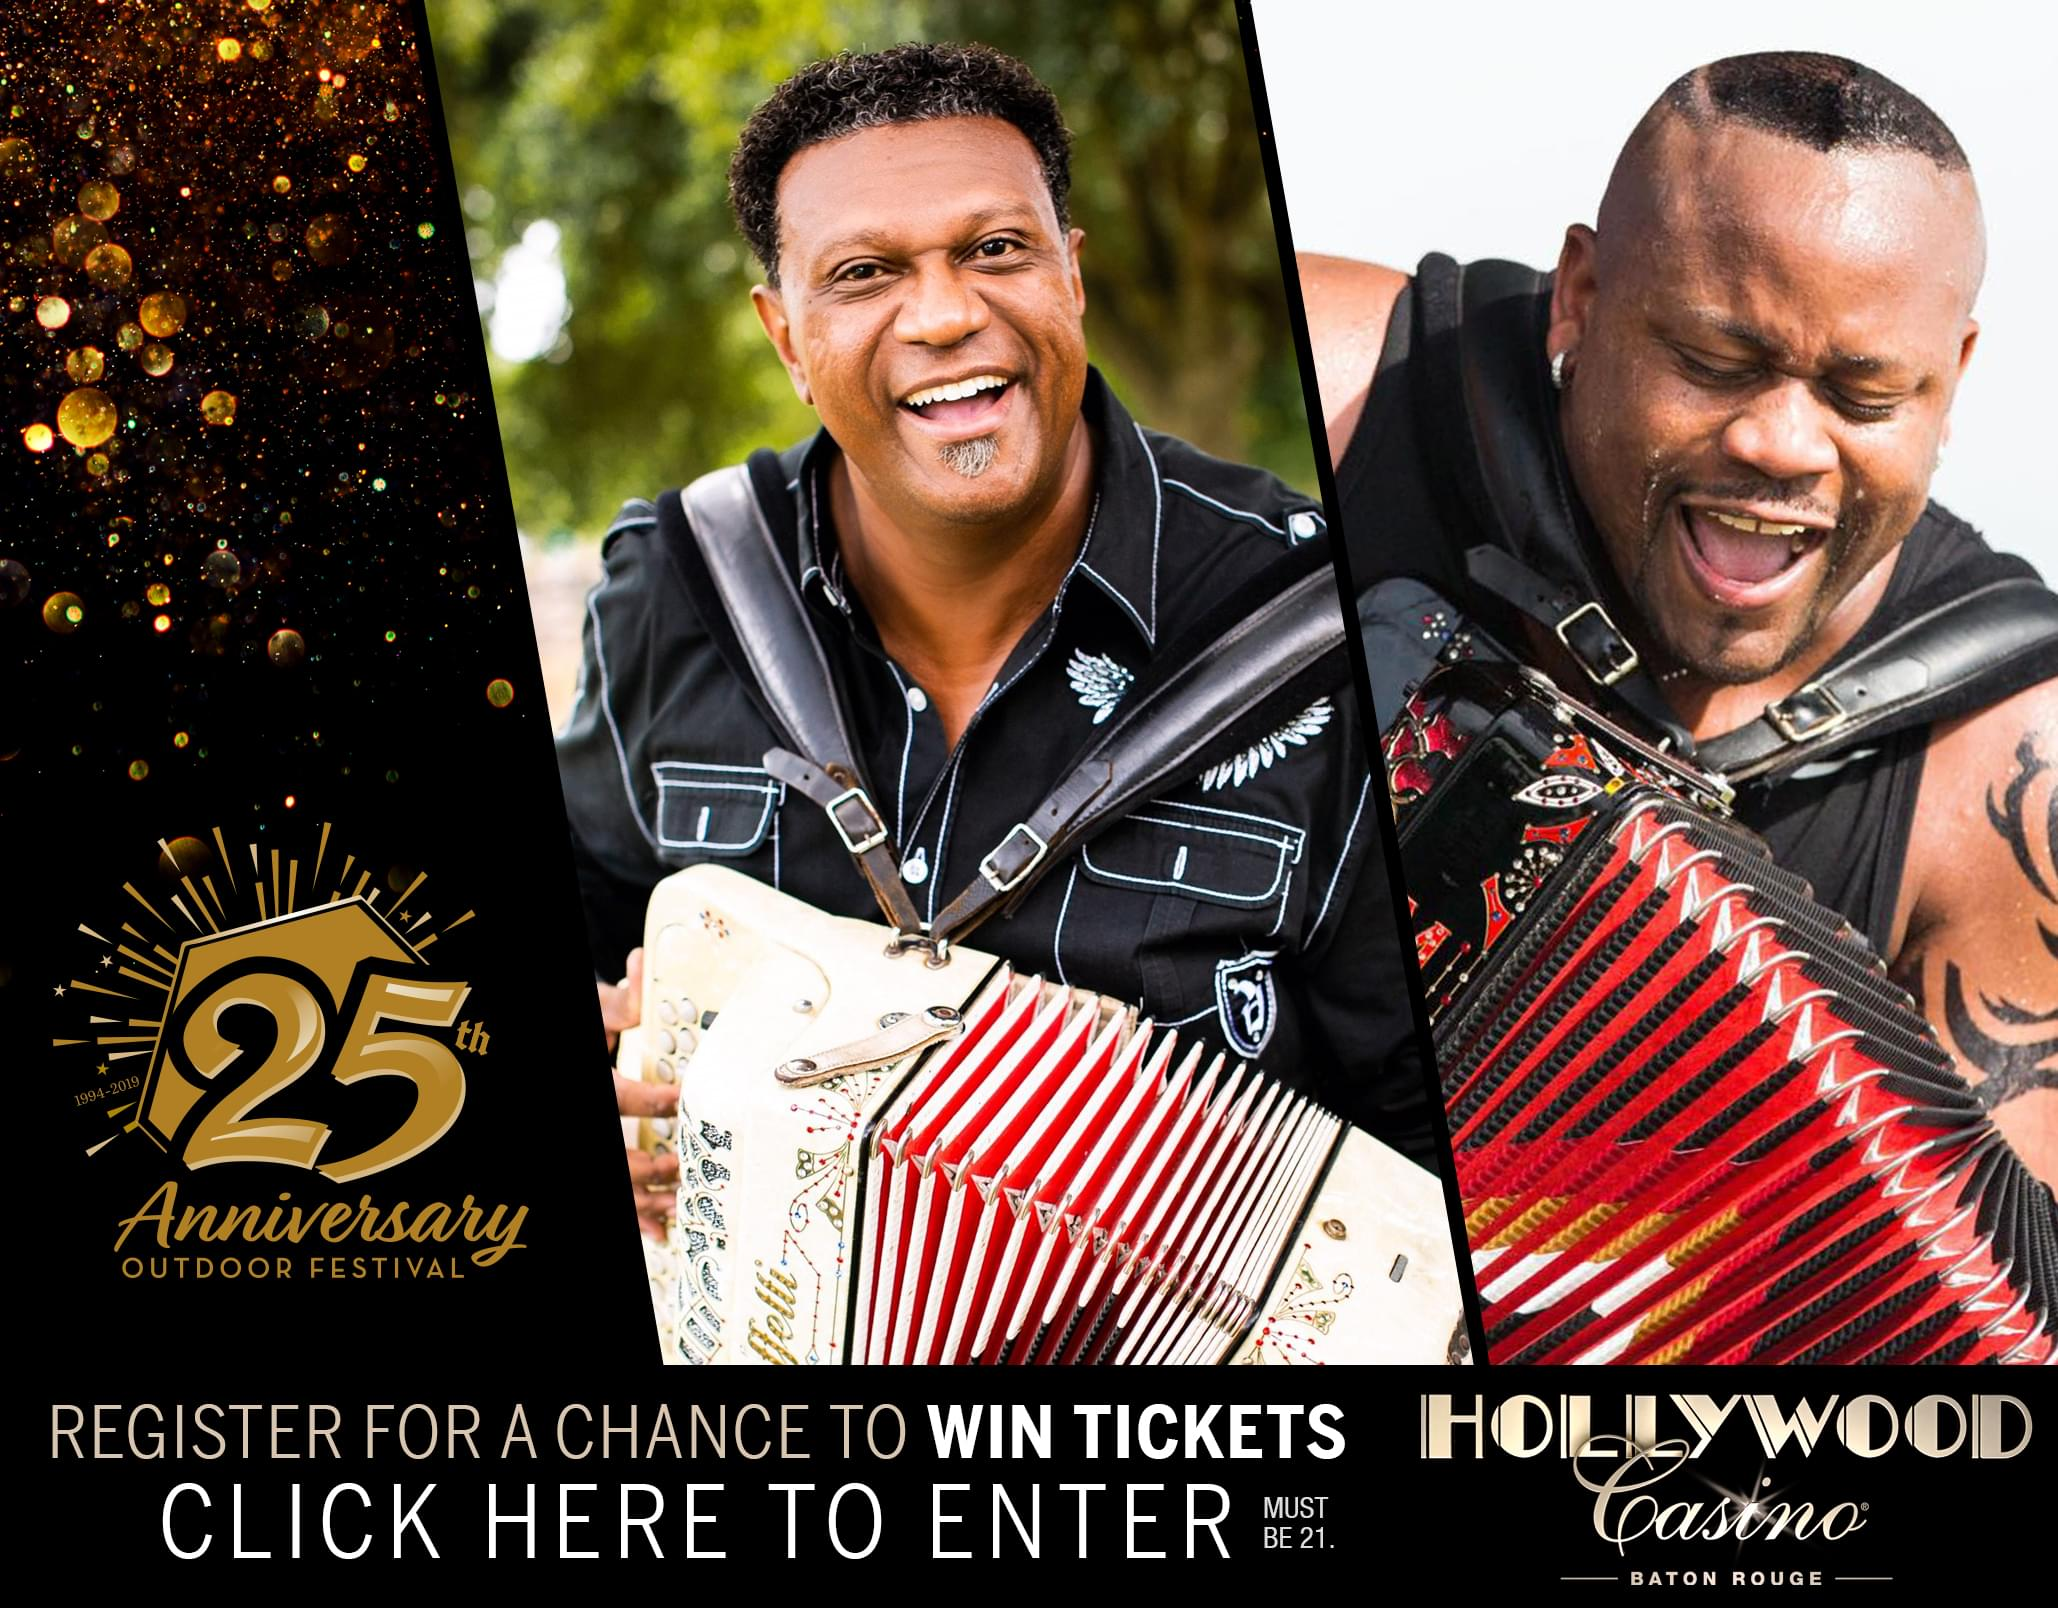 Register to Win Tickets to the Hollywood Casino Outdoor Festival 25th Anniversary